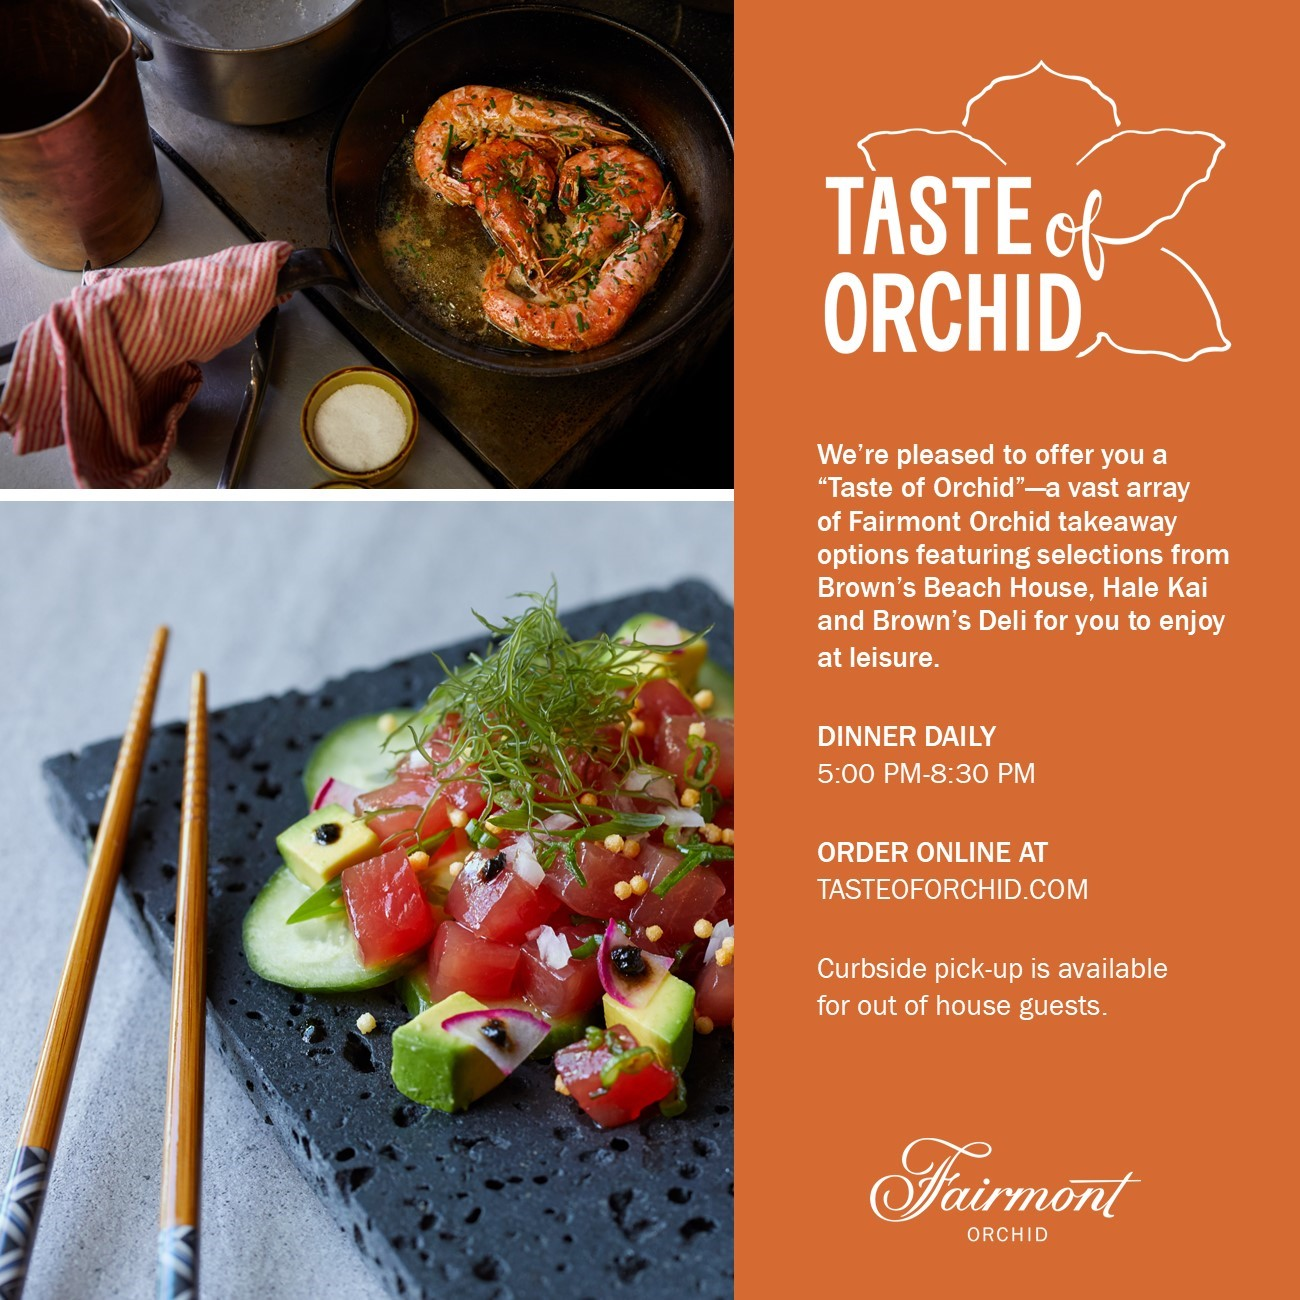 Fairmont-Orchid_Taste-of-Orchid_Ad_1300x1300.jpg